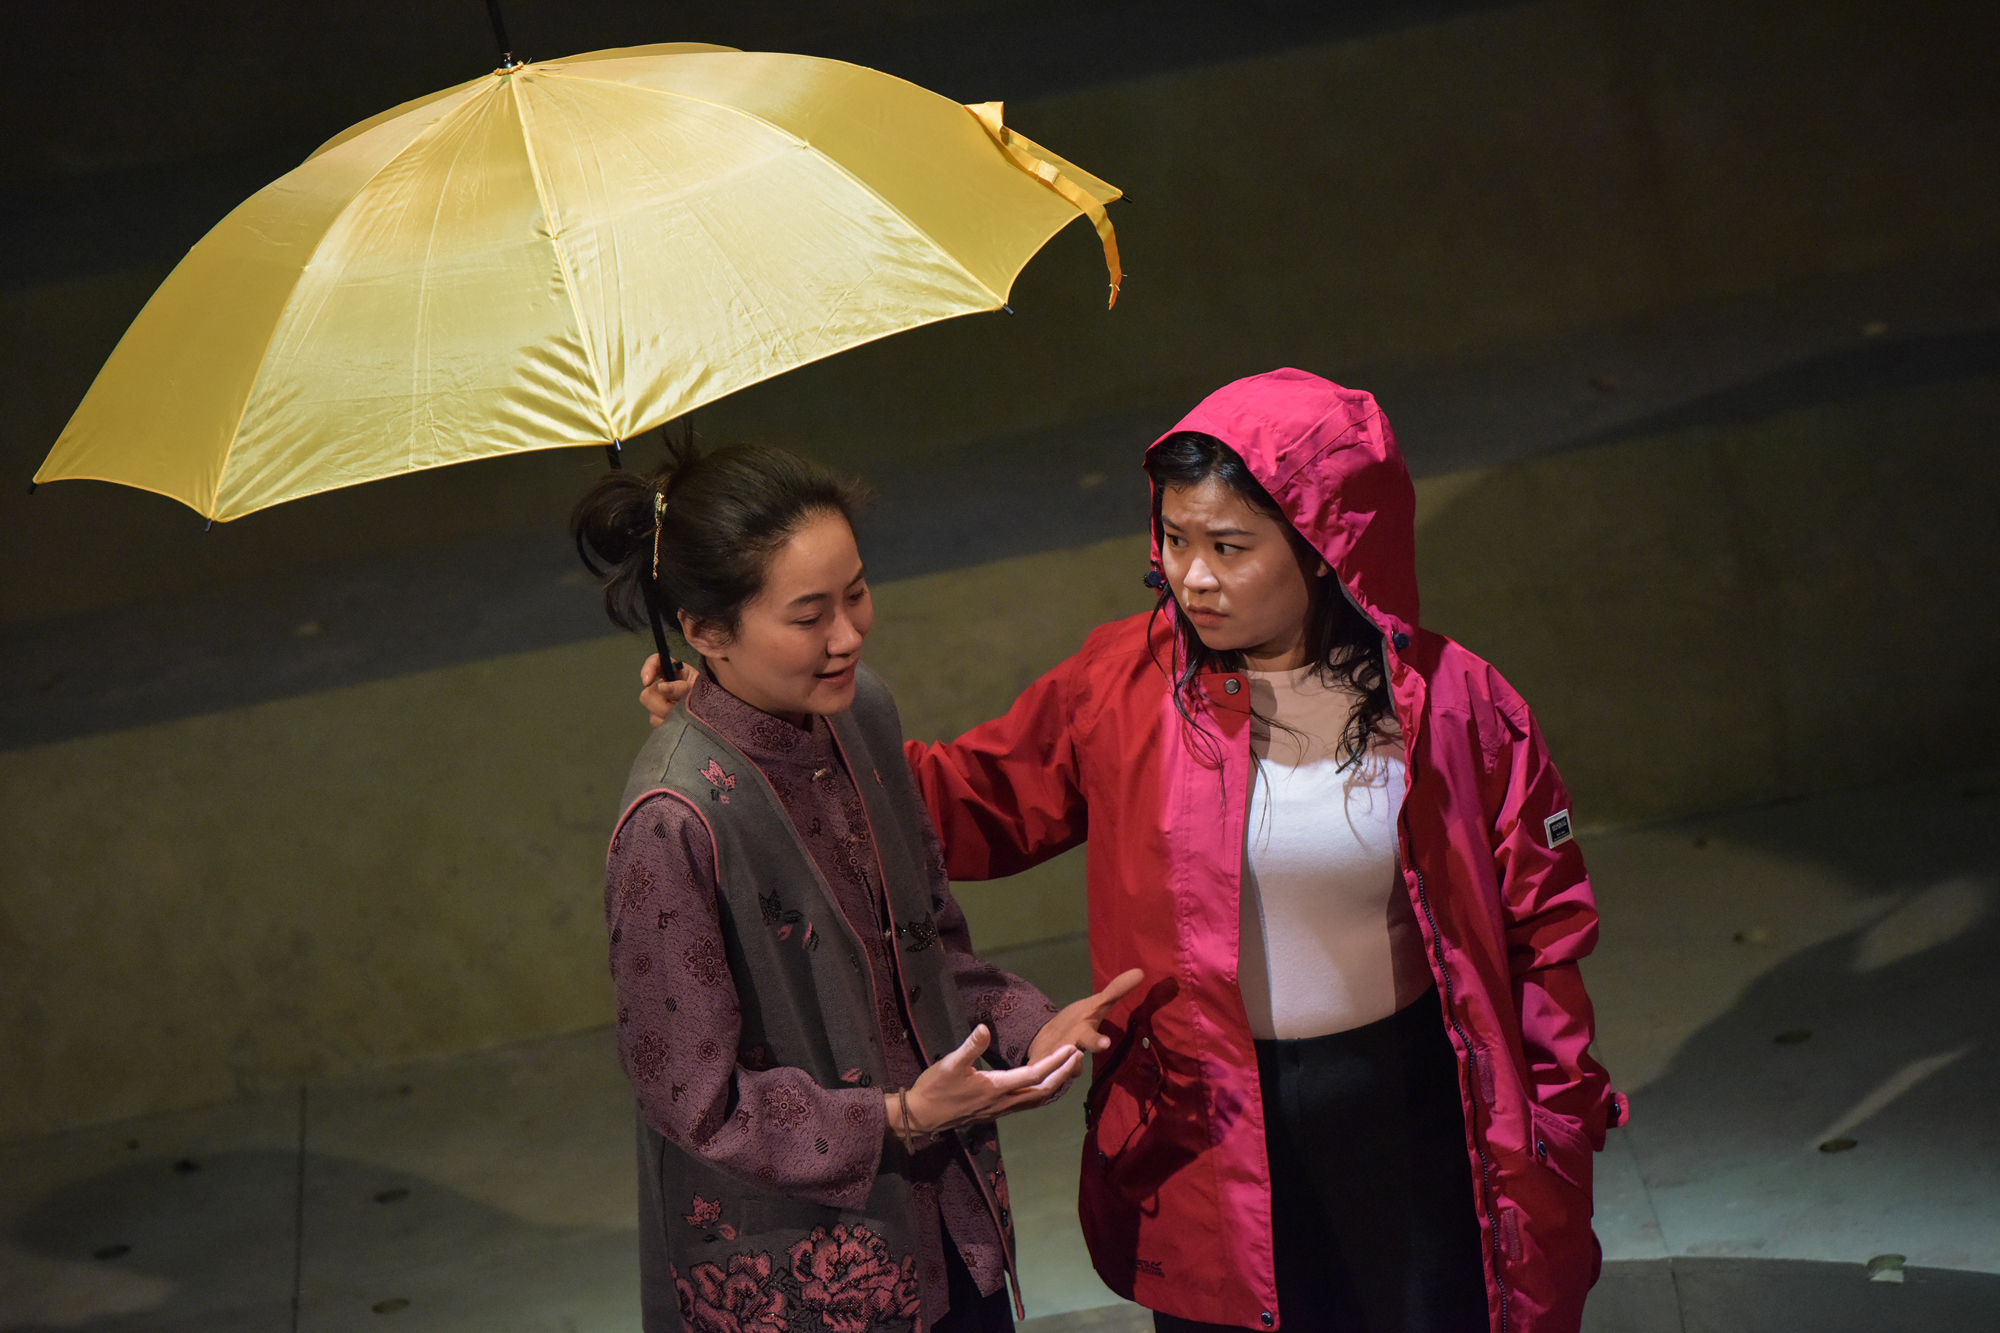 Charlotte Chiew and Mei Mac in Under the Umbrella